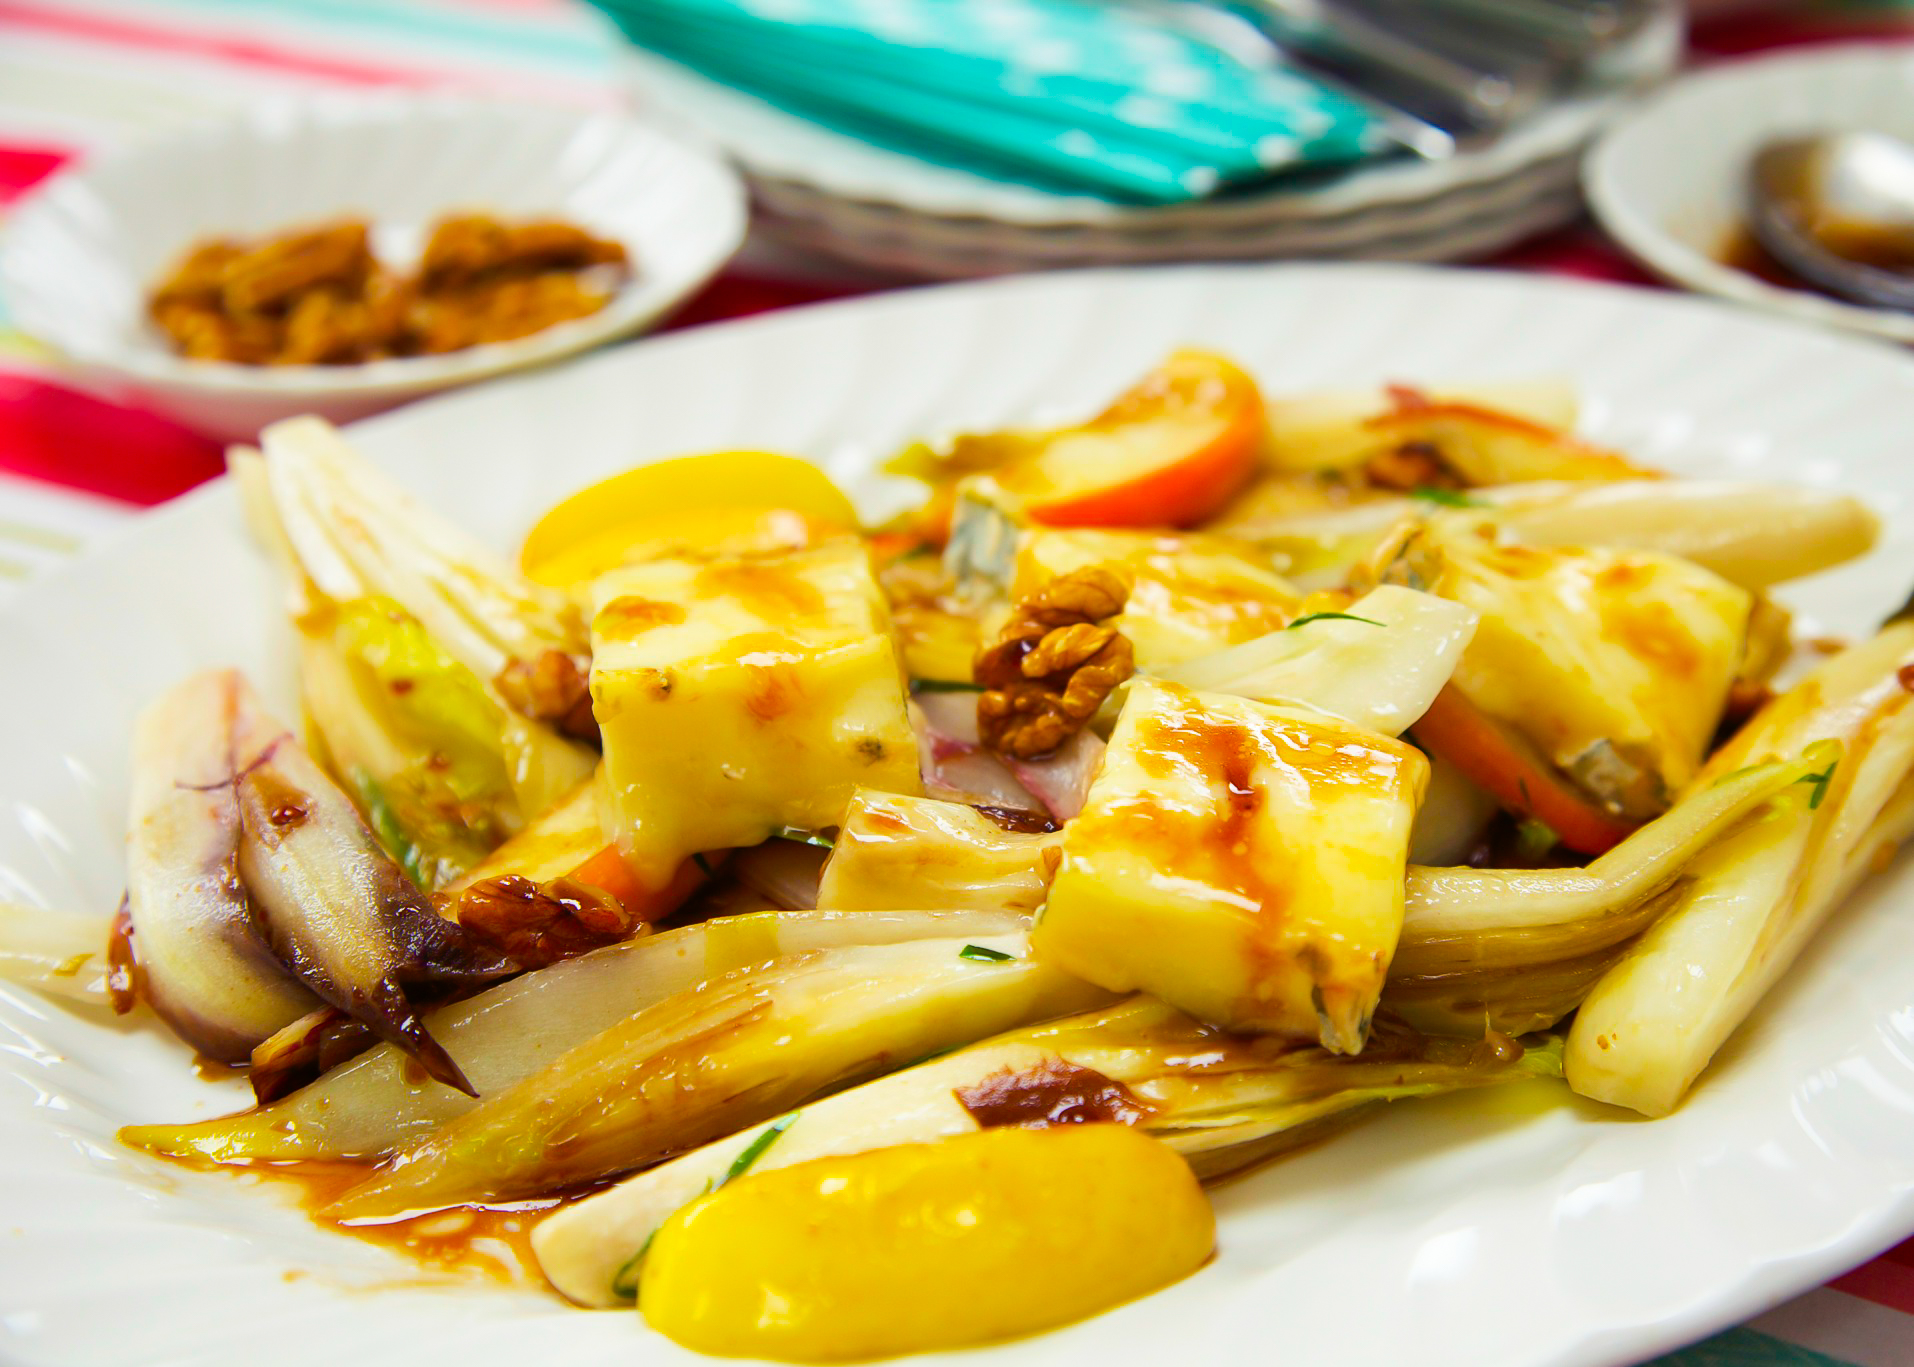 Warm apple, chicory, and taleggio salad